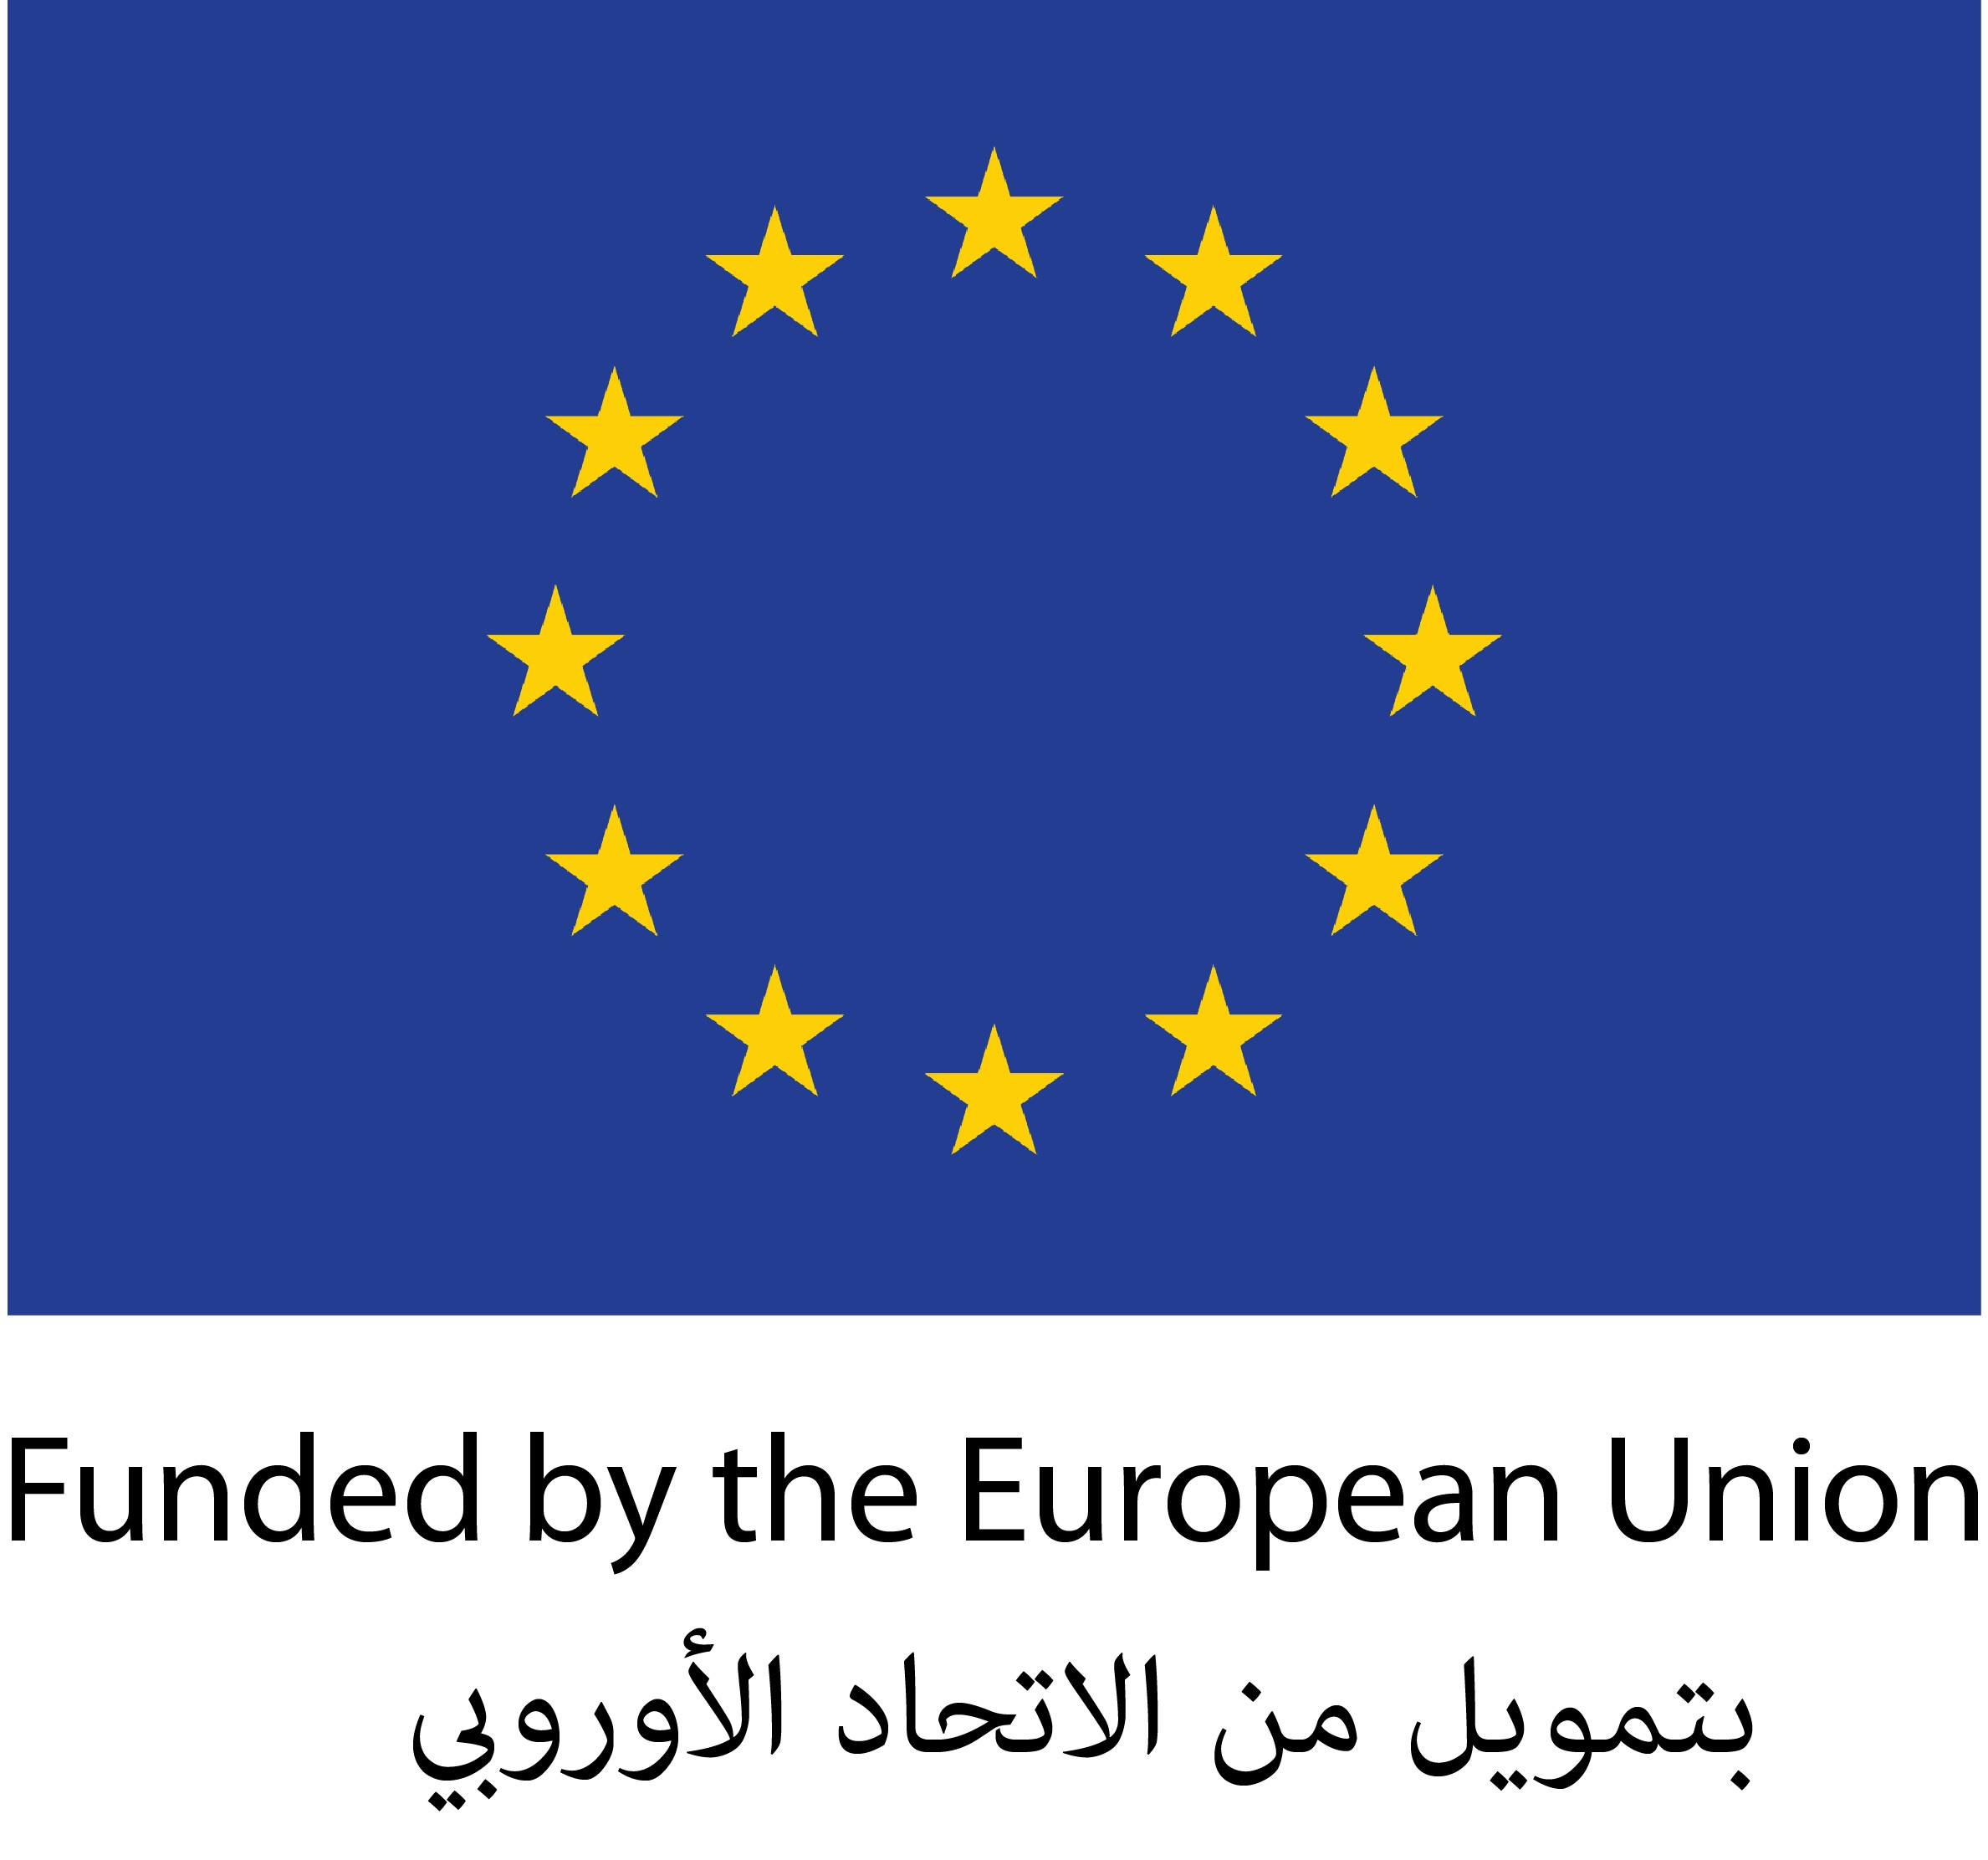 funded-by-eu-high-res-png.jpg